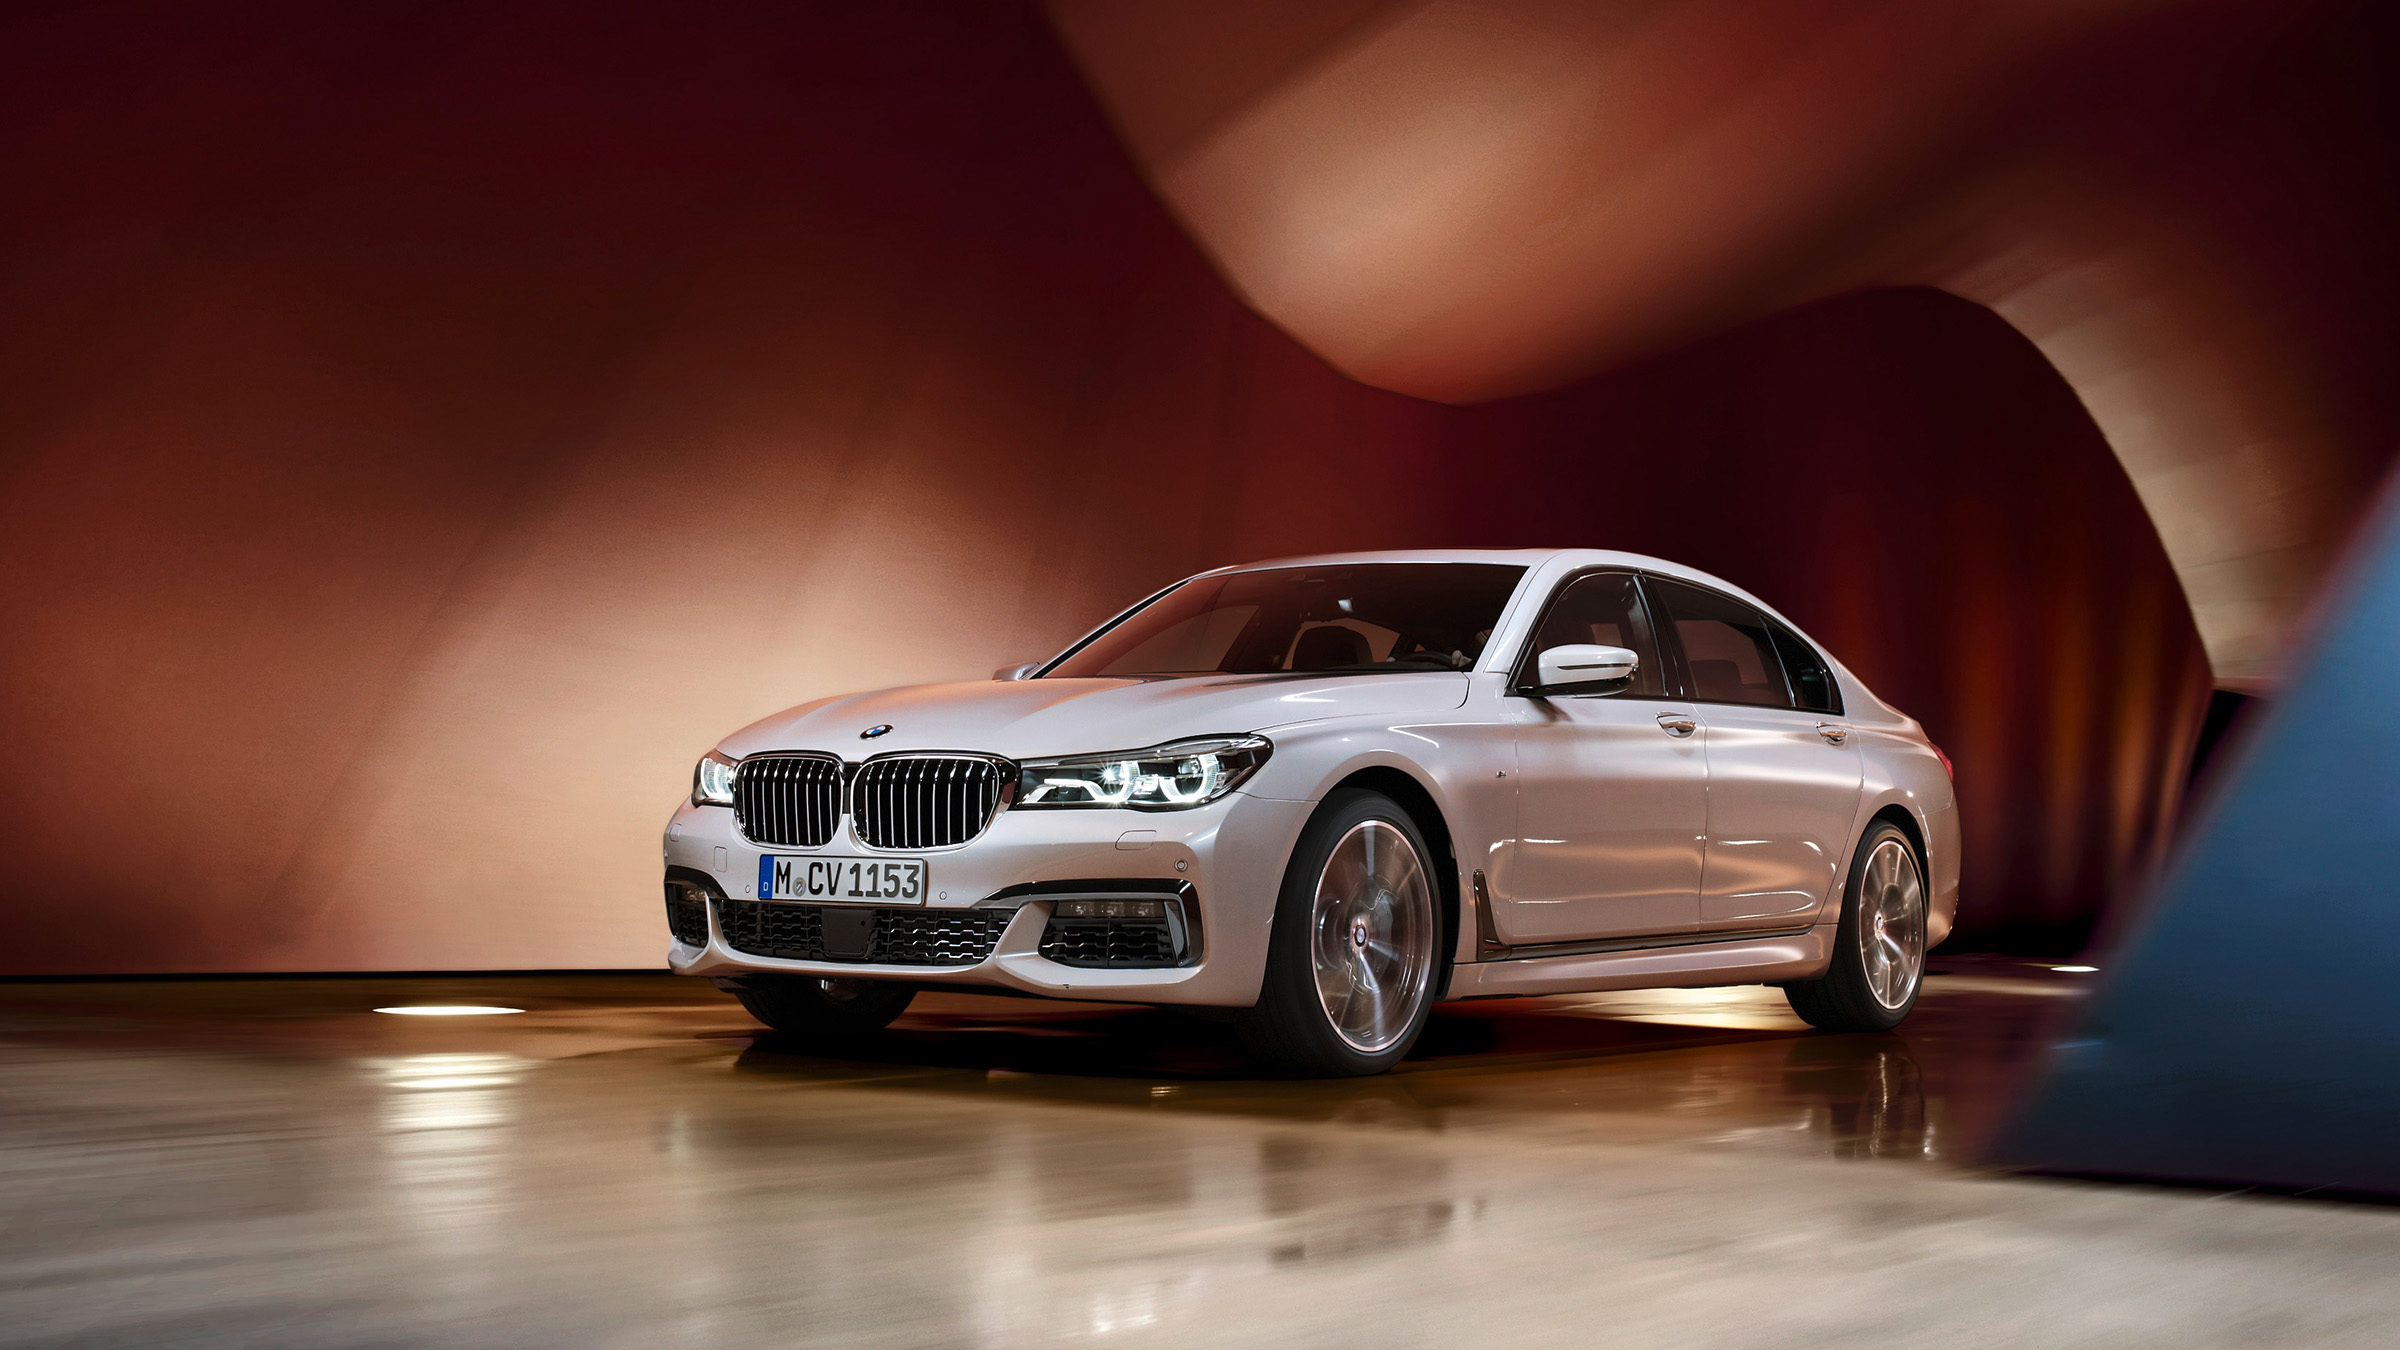 BMW_7ER_EMIR_HAVERIC_08_2400